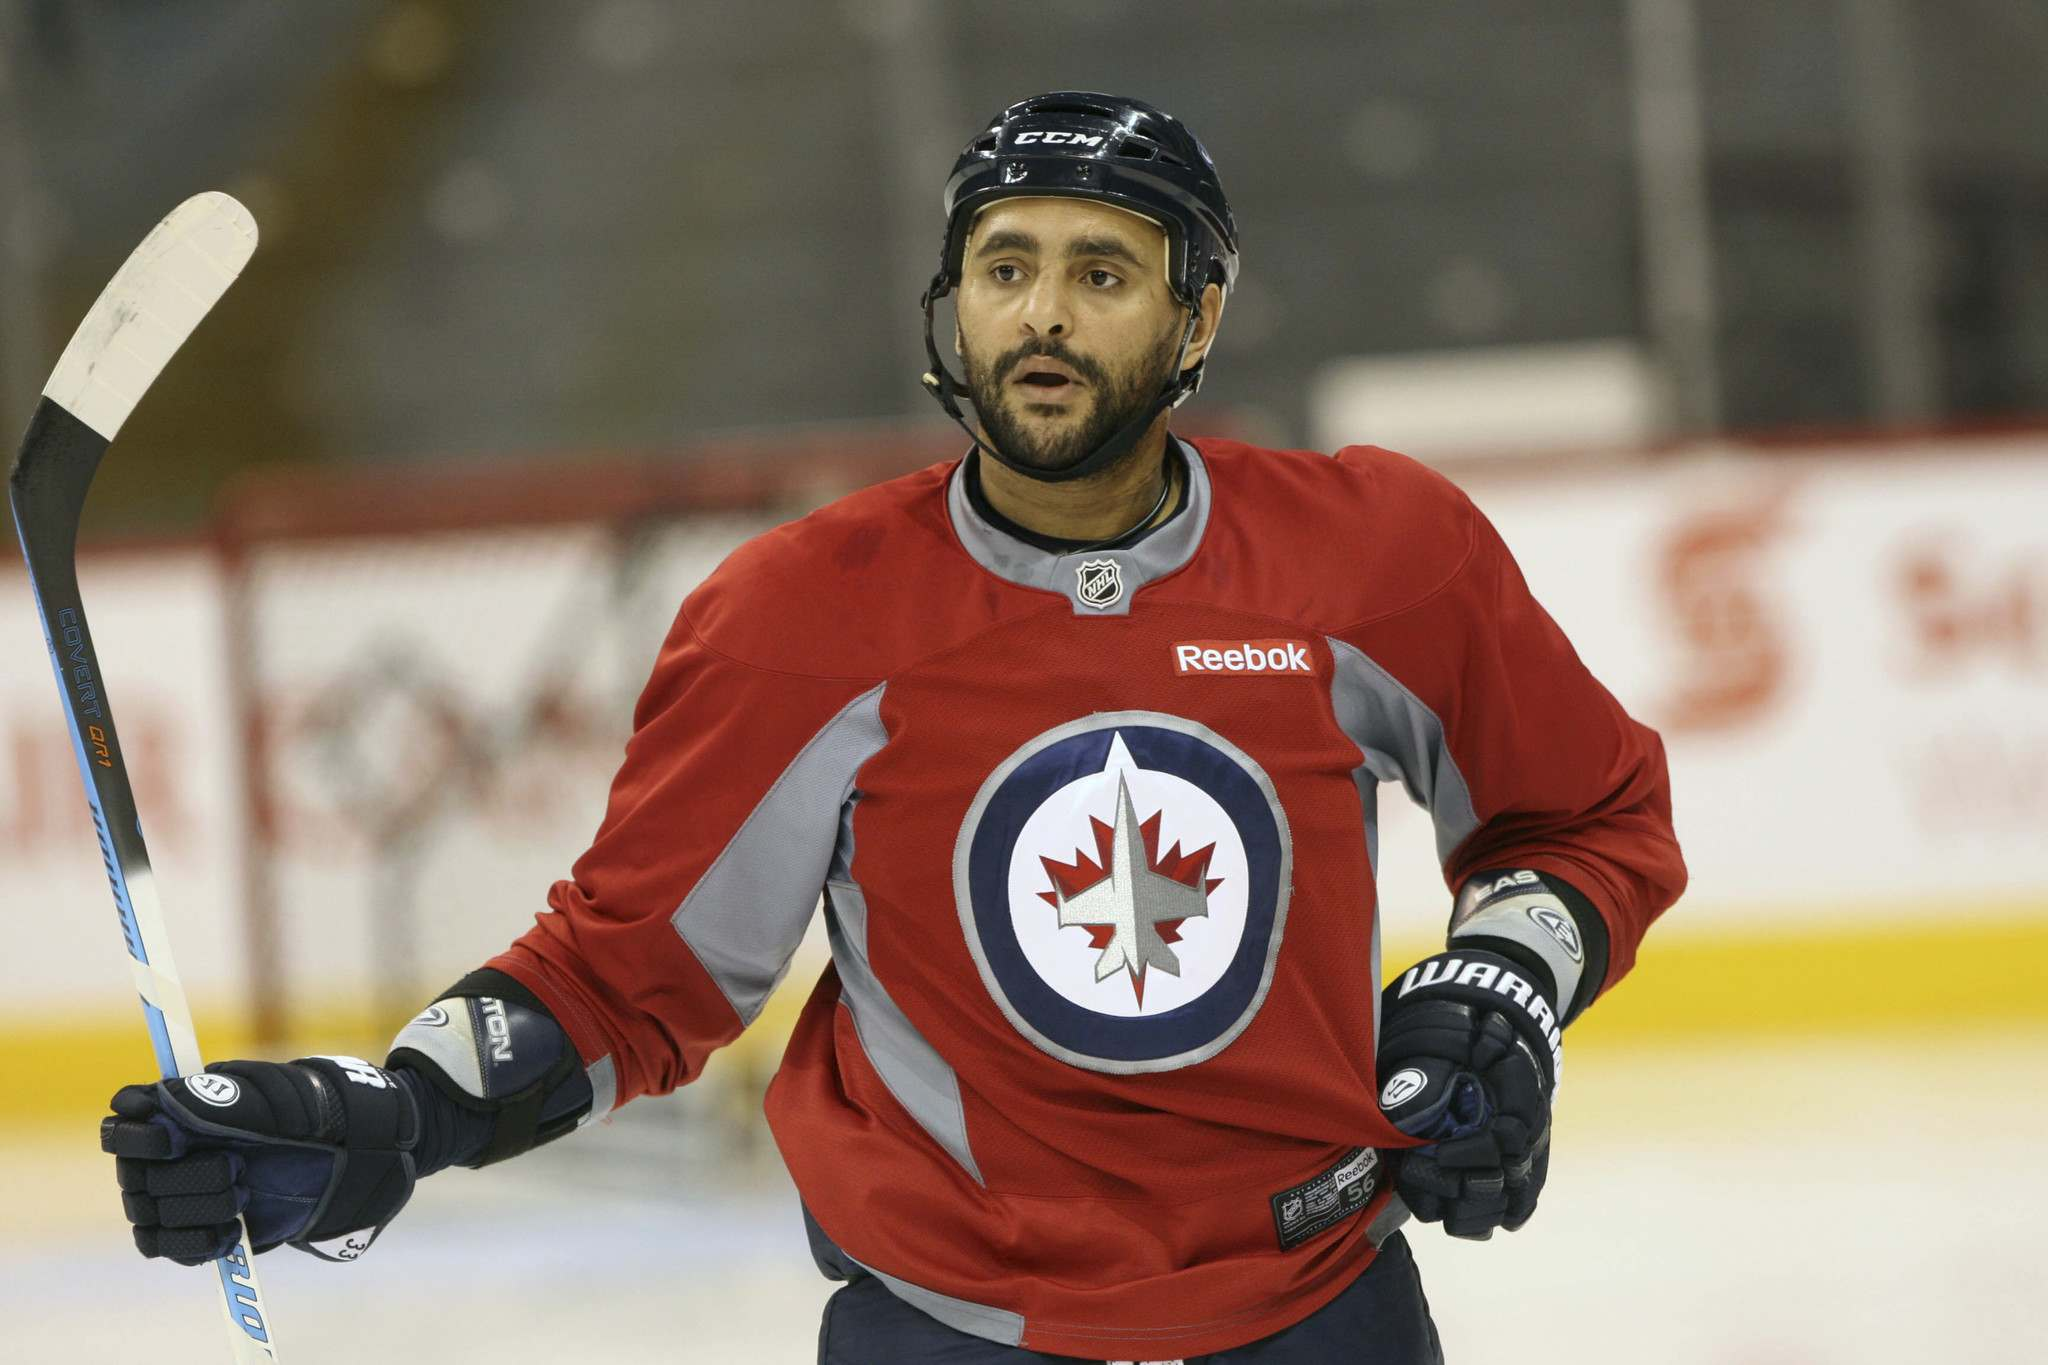 </p><p>JOE BRYKSA / WINNIPEG FREE PRESS FILES</p><p>Dustin Byfuglien, 34, has two years remaining on his contract, with an average annual cap hit of $7.6 million. He suffered two ankle injuries and a concussion last year and played in only 42 of the club's 82 regular-season games.</p></p>